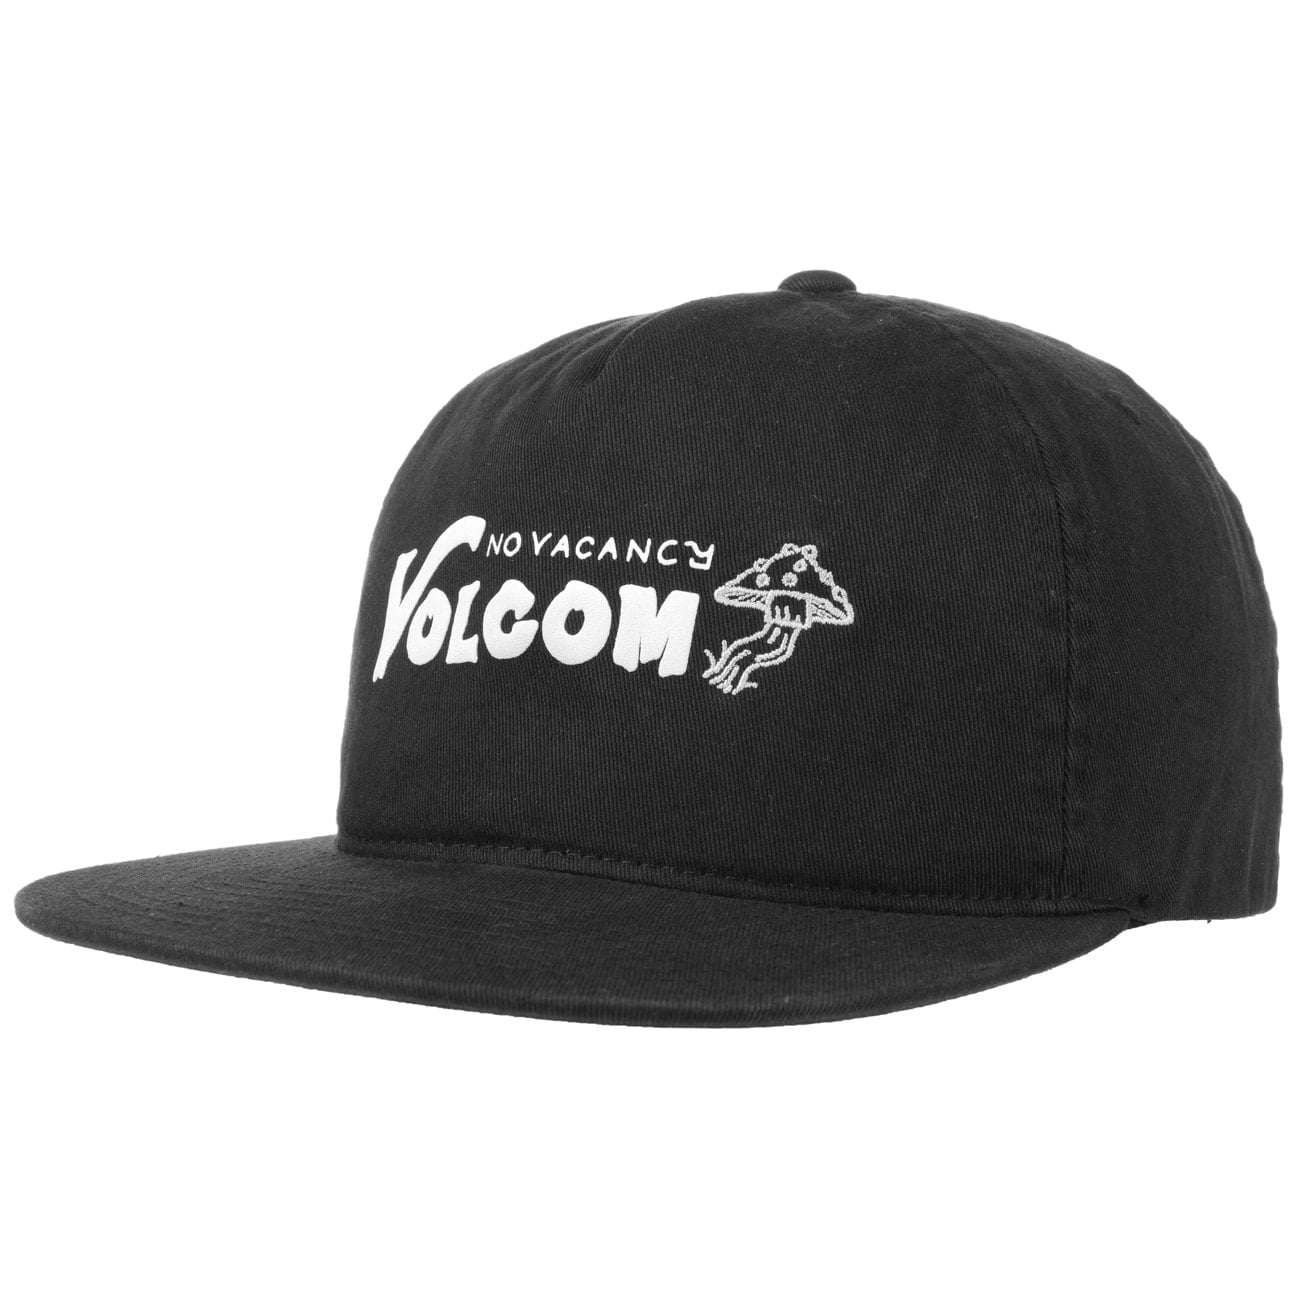 No Vacancy Casquette Snapback by Volcom  baseball cap